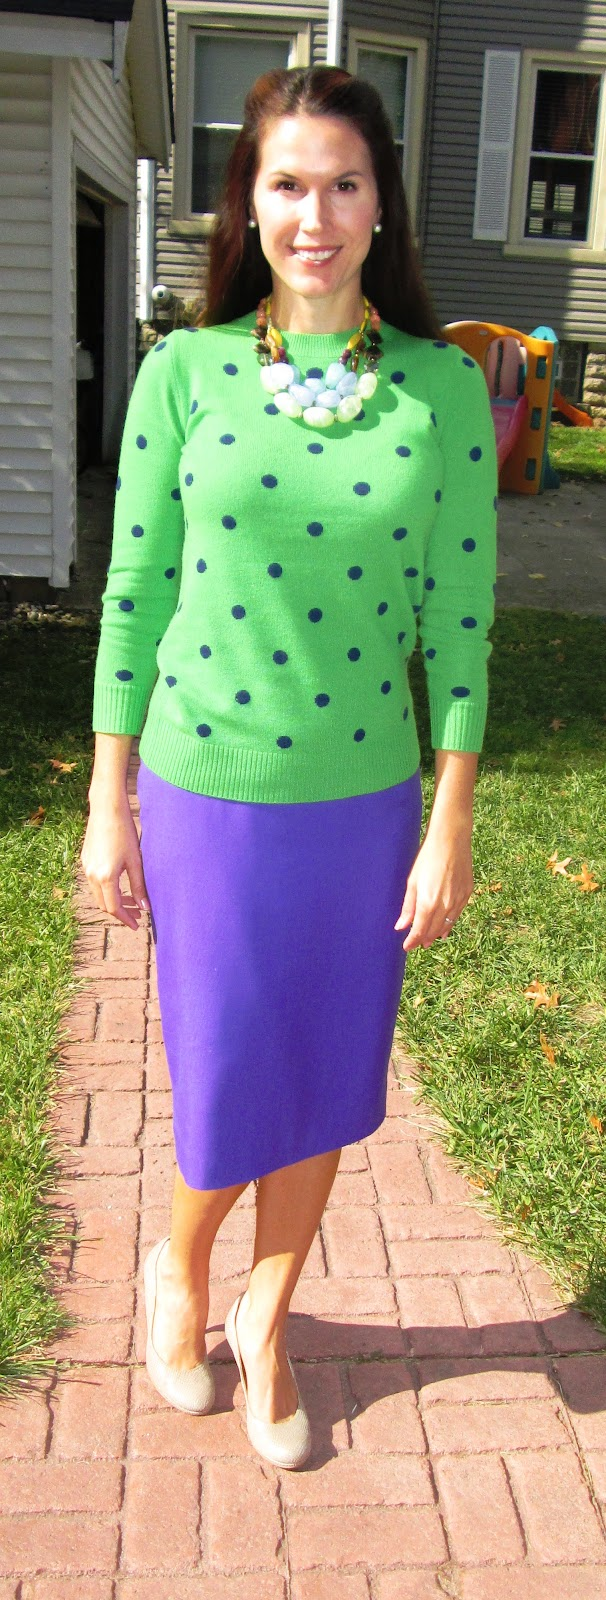 7426fd2050 Collection cashmere polka dot sweater in green/navy: J.Crew, other colors  here. Telegraph pencil skirt in super 120s wool in majestic purple: J.Crew,  ...